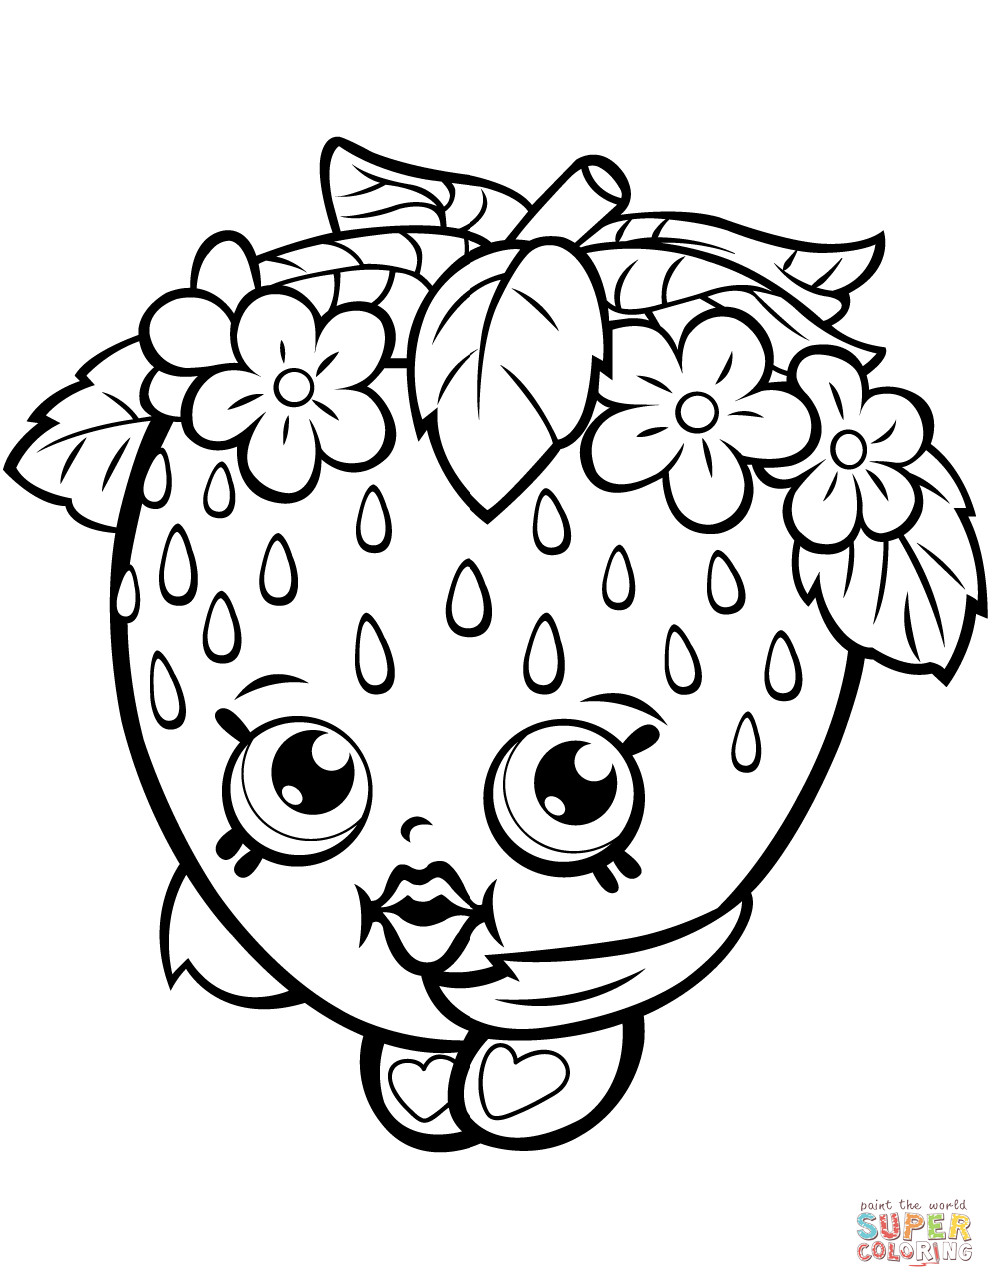 995x1288 Strawberry Kiss Shopkin Coloring Page Free Printable Pages